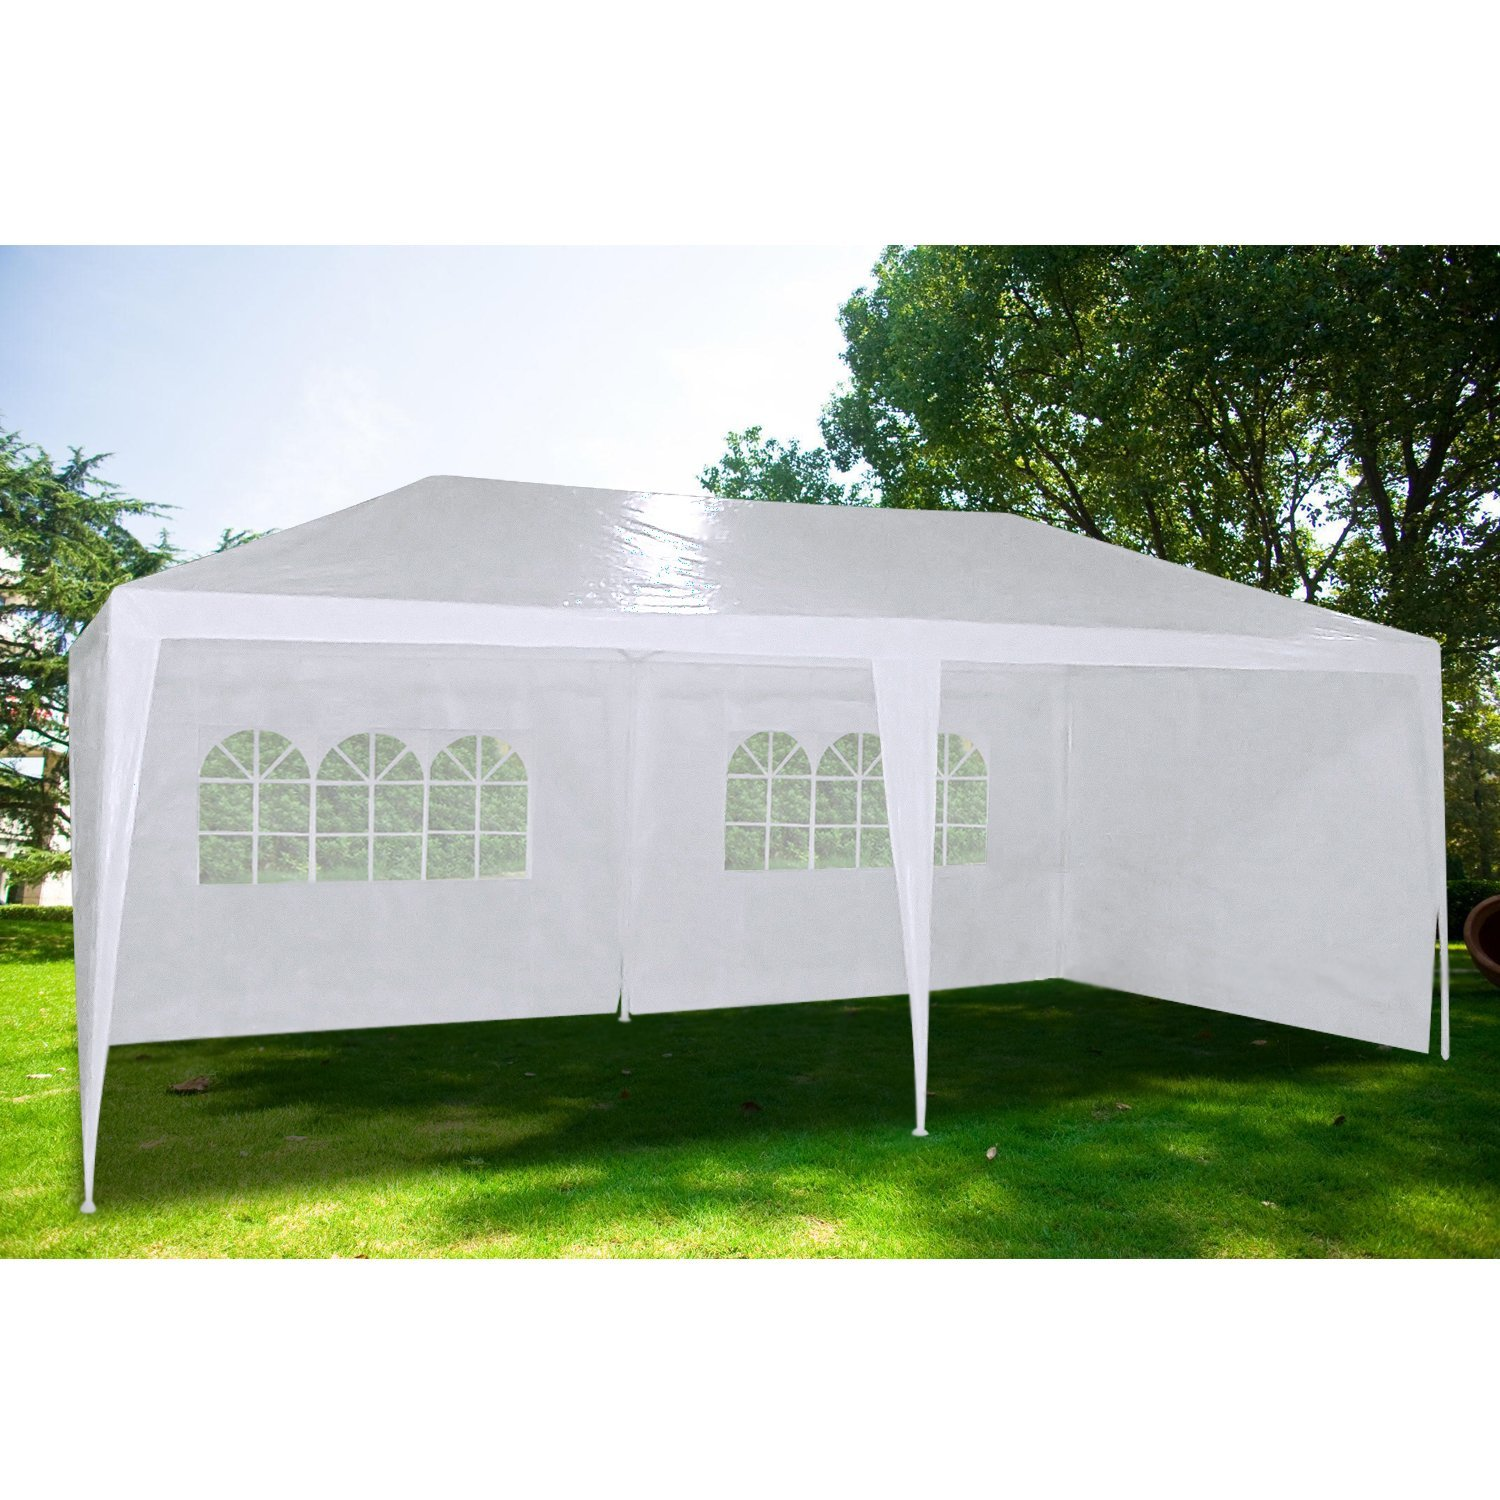 Quictent Heavy Duty Gazebo Wedding Party Tent BBQ Canopy with Side Walls (10